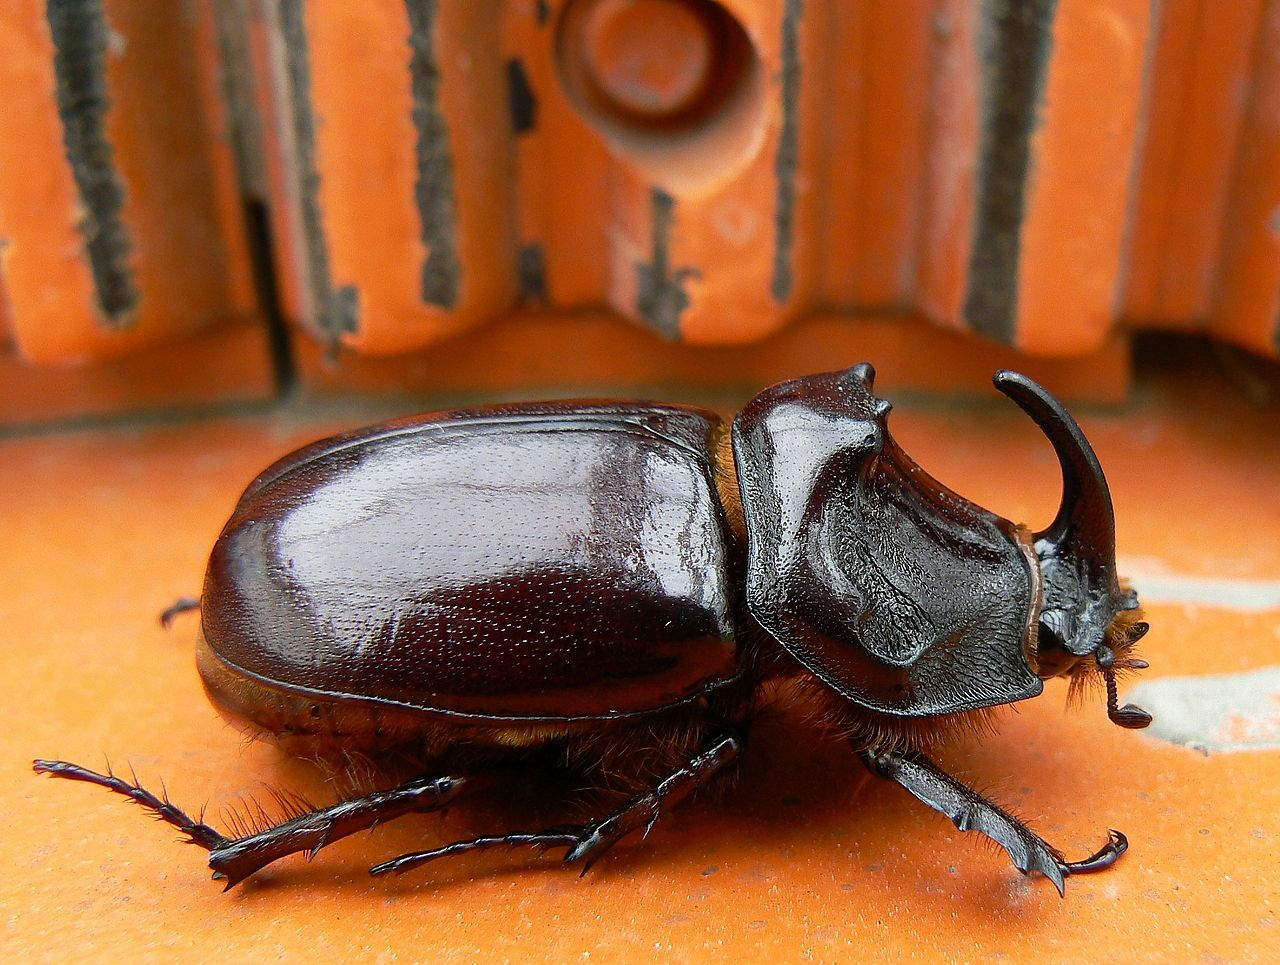 Original file      2 171   215  1 637 pixels  file size  2 68 MB  MIME    Rhinoceros Beetle Life Cycle